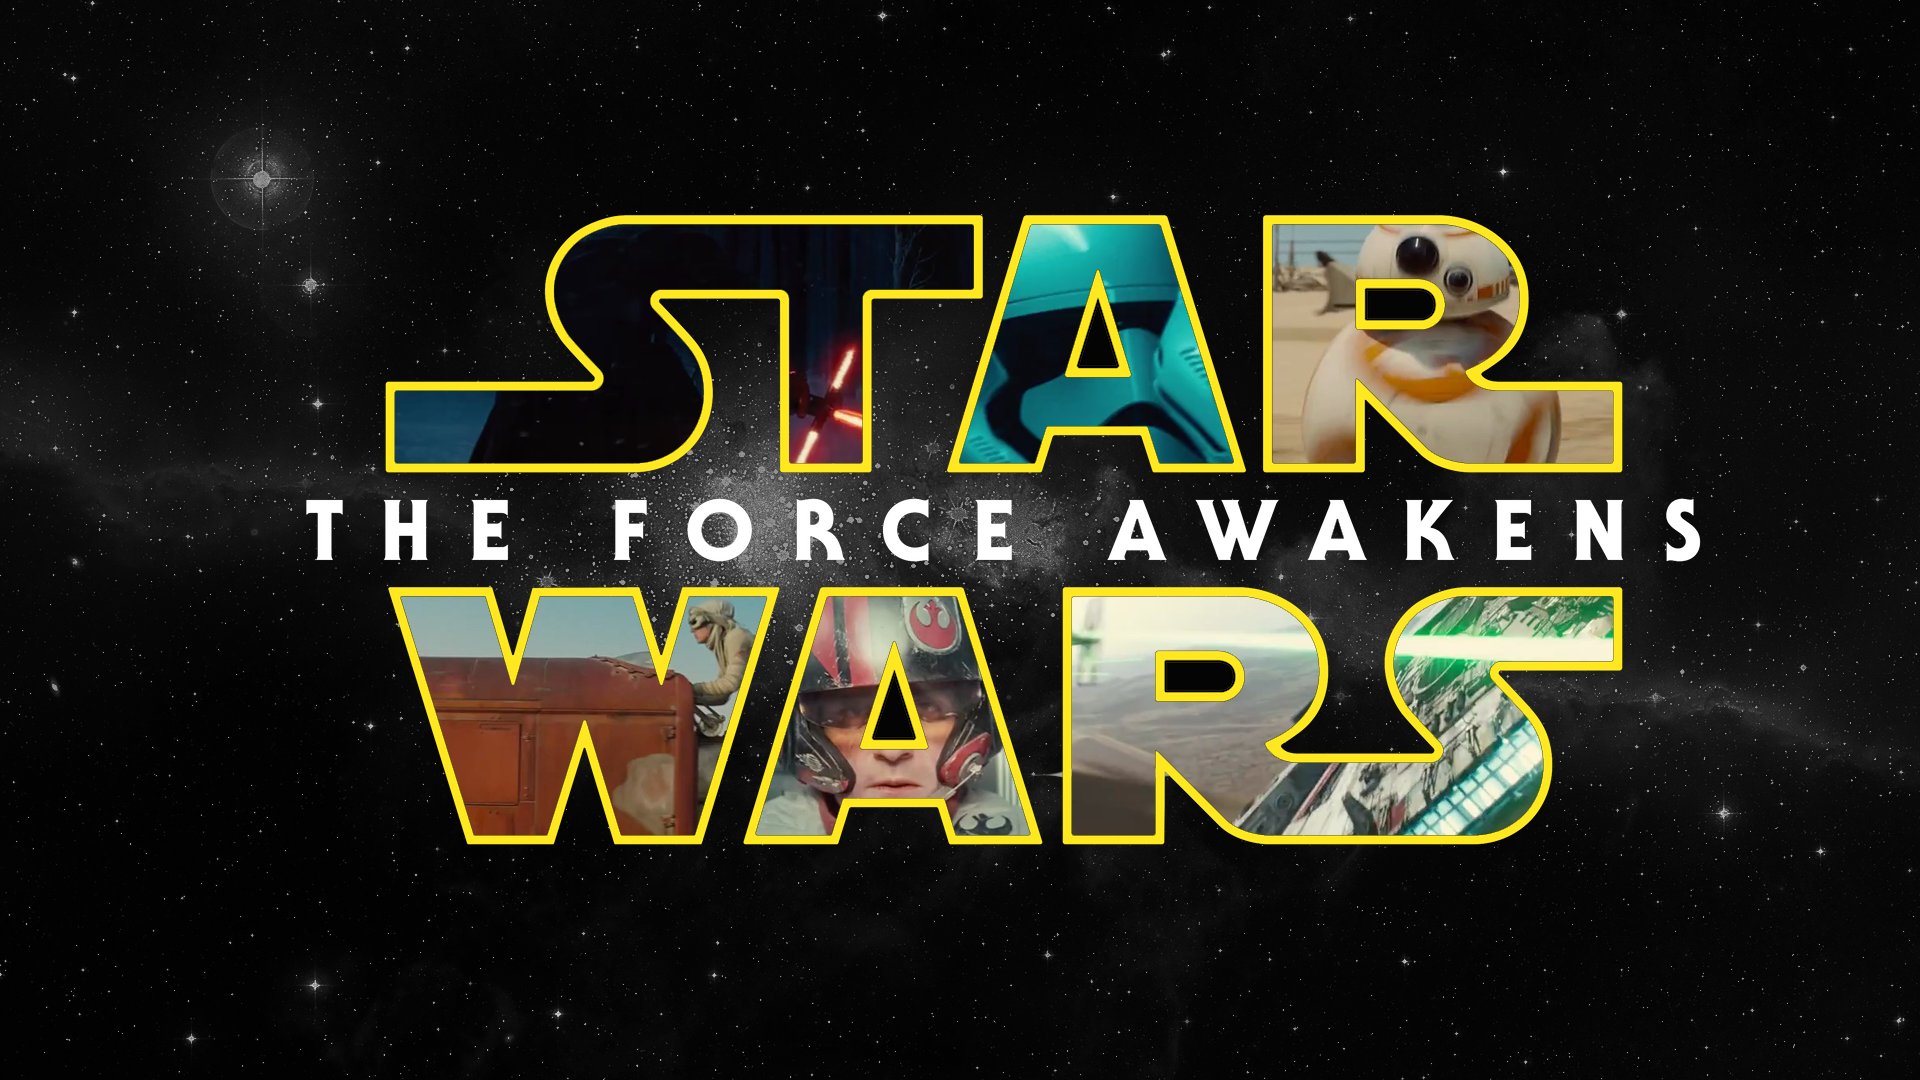 Star Wars: The Force Awakens Logo on a black background